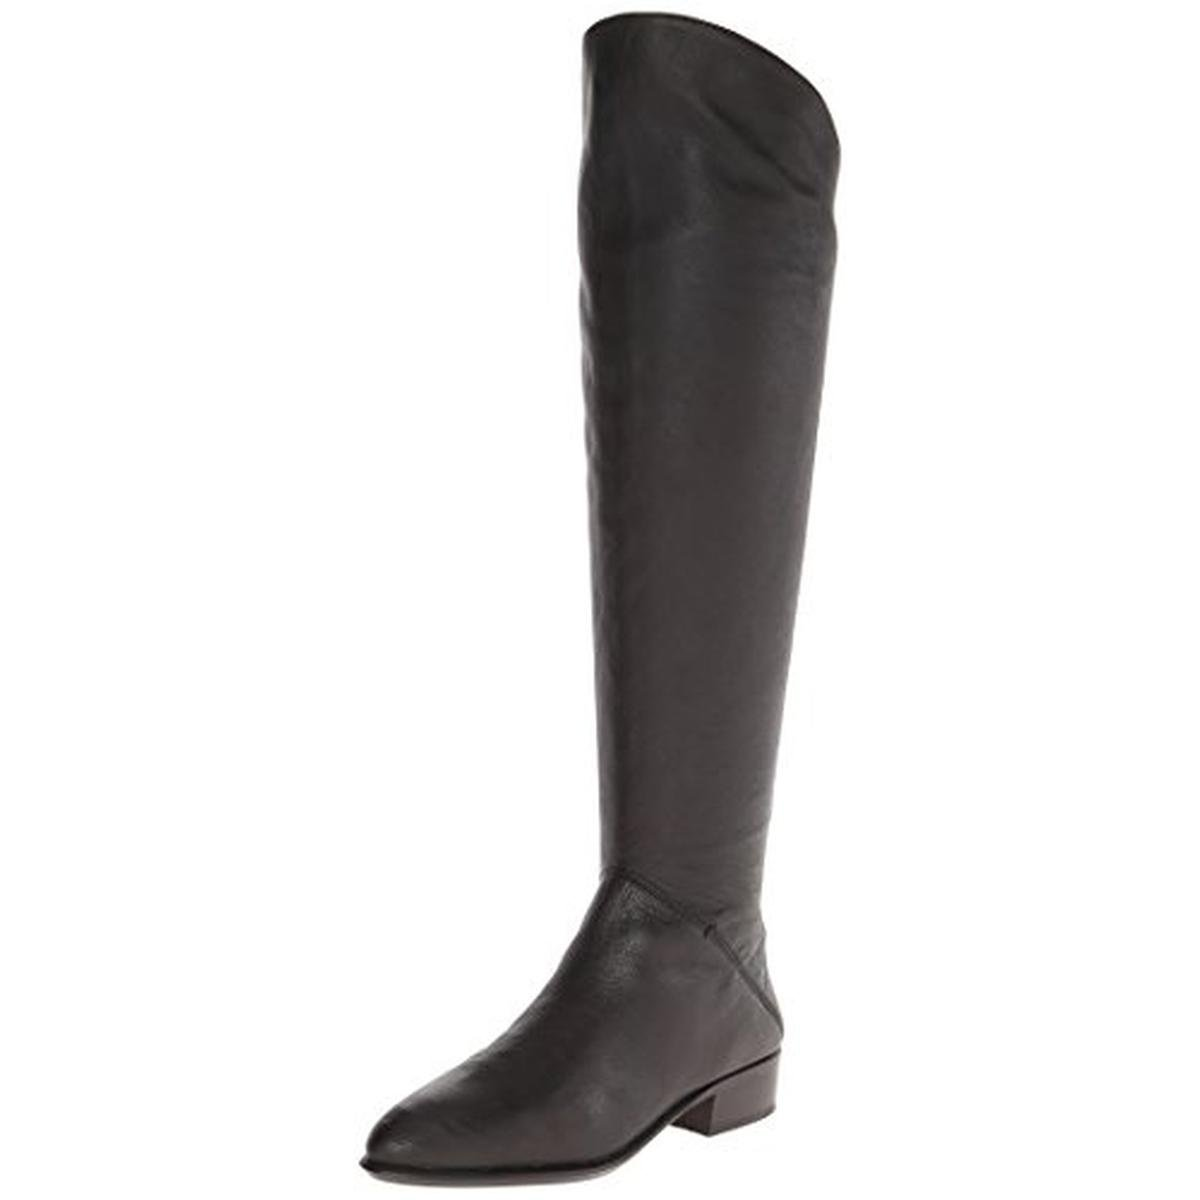 Dolce Vita Women's Meris Riding Boot,Black,6 M US